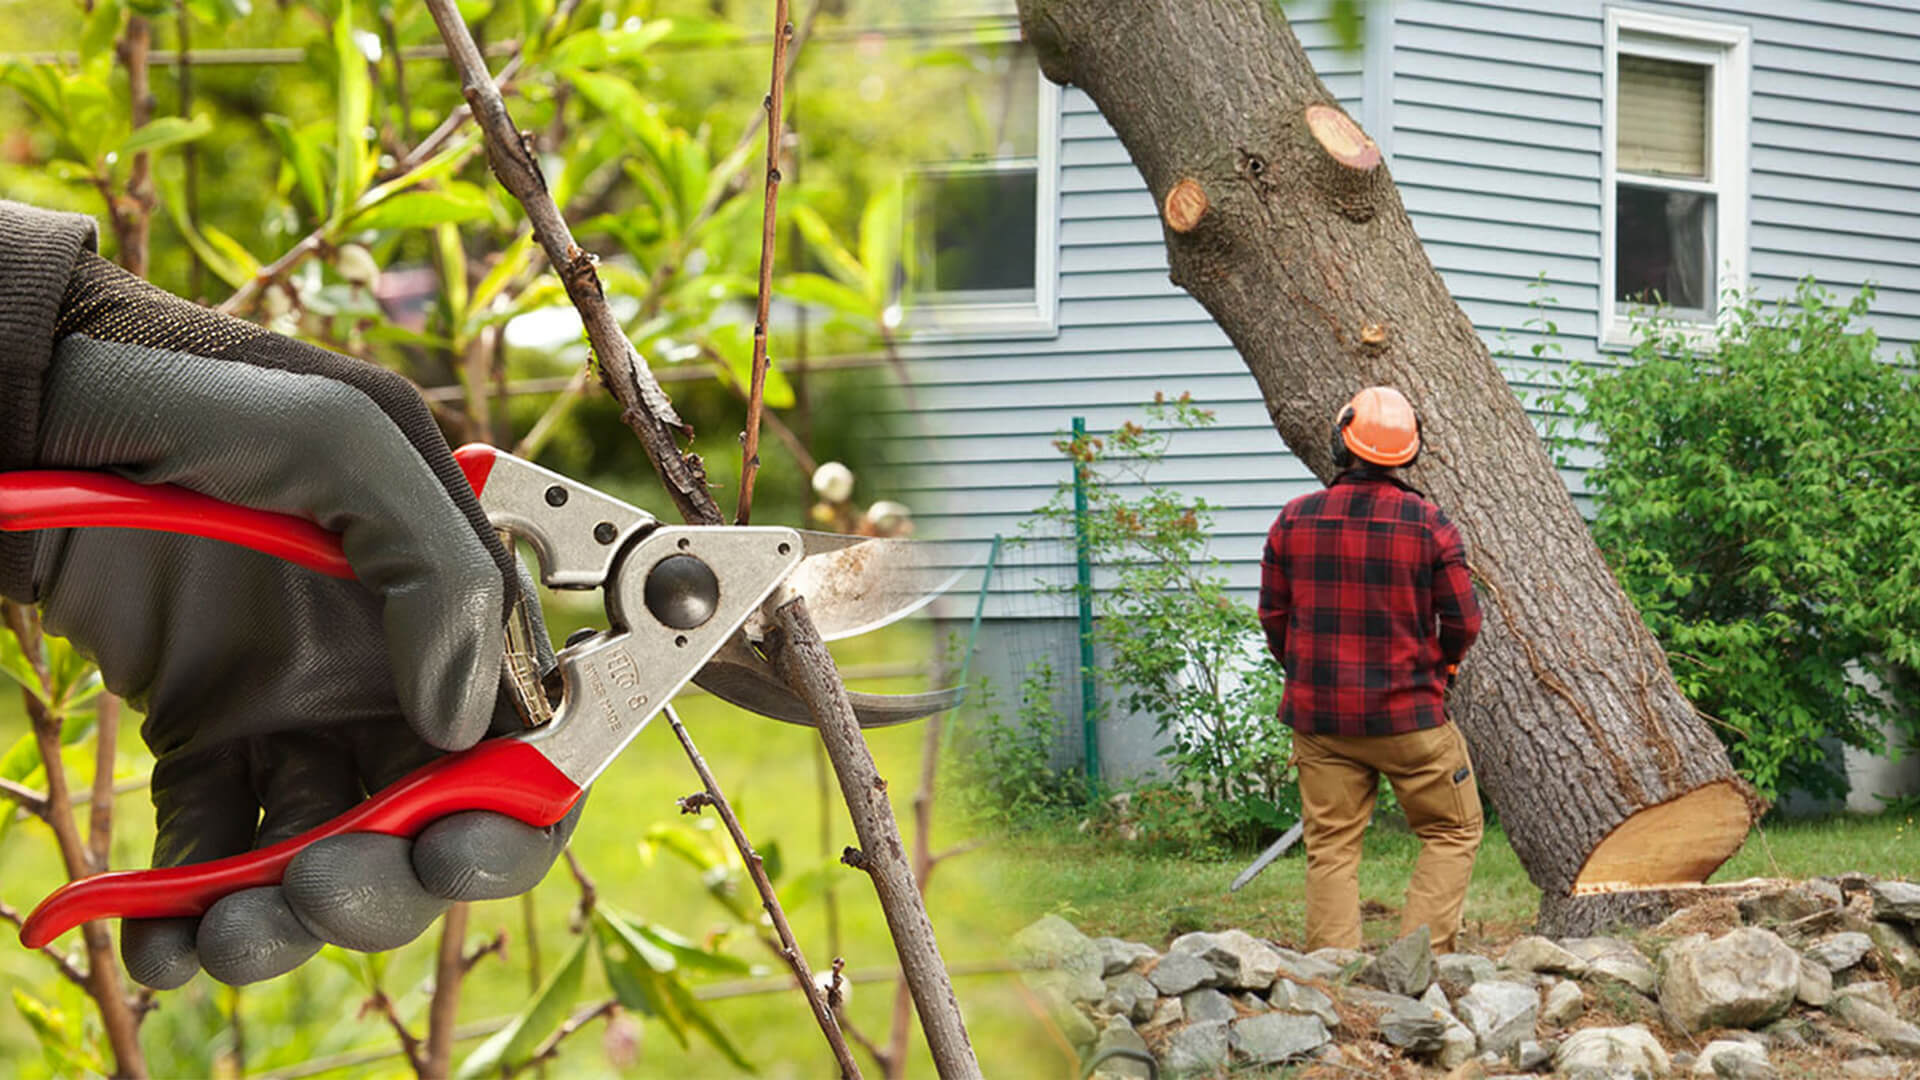 Tree pruning & tree removal-Cooper City FL Tree Trimming and Stump Grinding Services-We Offer Tree Trimming Services, Tree Removal, Tree Pruning, Tree Cutting, Residential and Commercial Tree Trimming Services, Storm Damage, Emergency Tree Removal, Land Clearing, Tree Companies, Tree Care Service, Stump Grinding, and we're the Best Tree Trimming Company Near You Guaranteed!